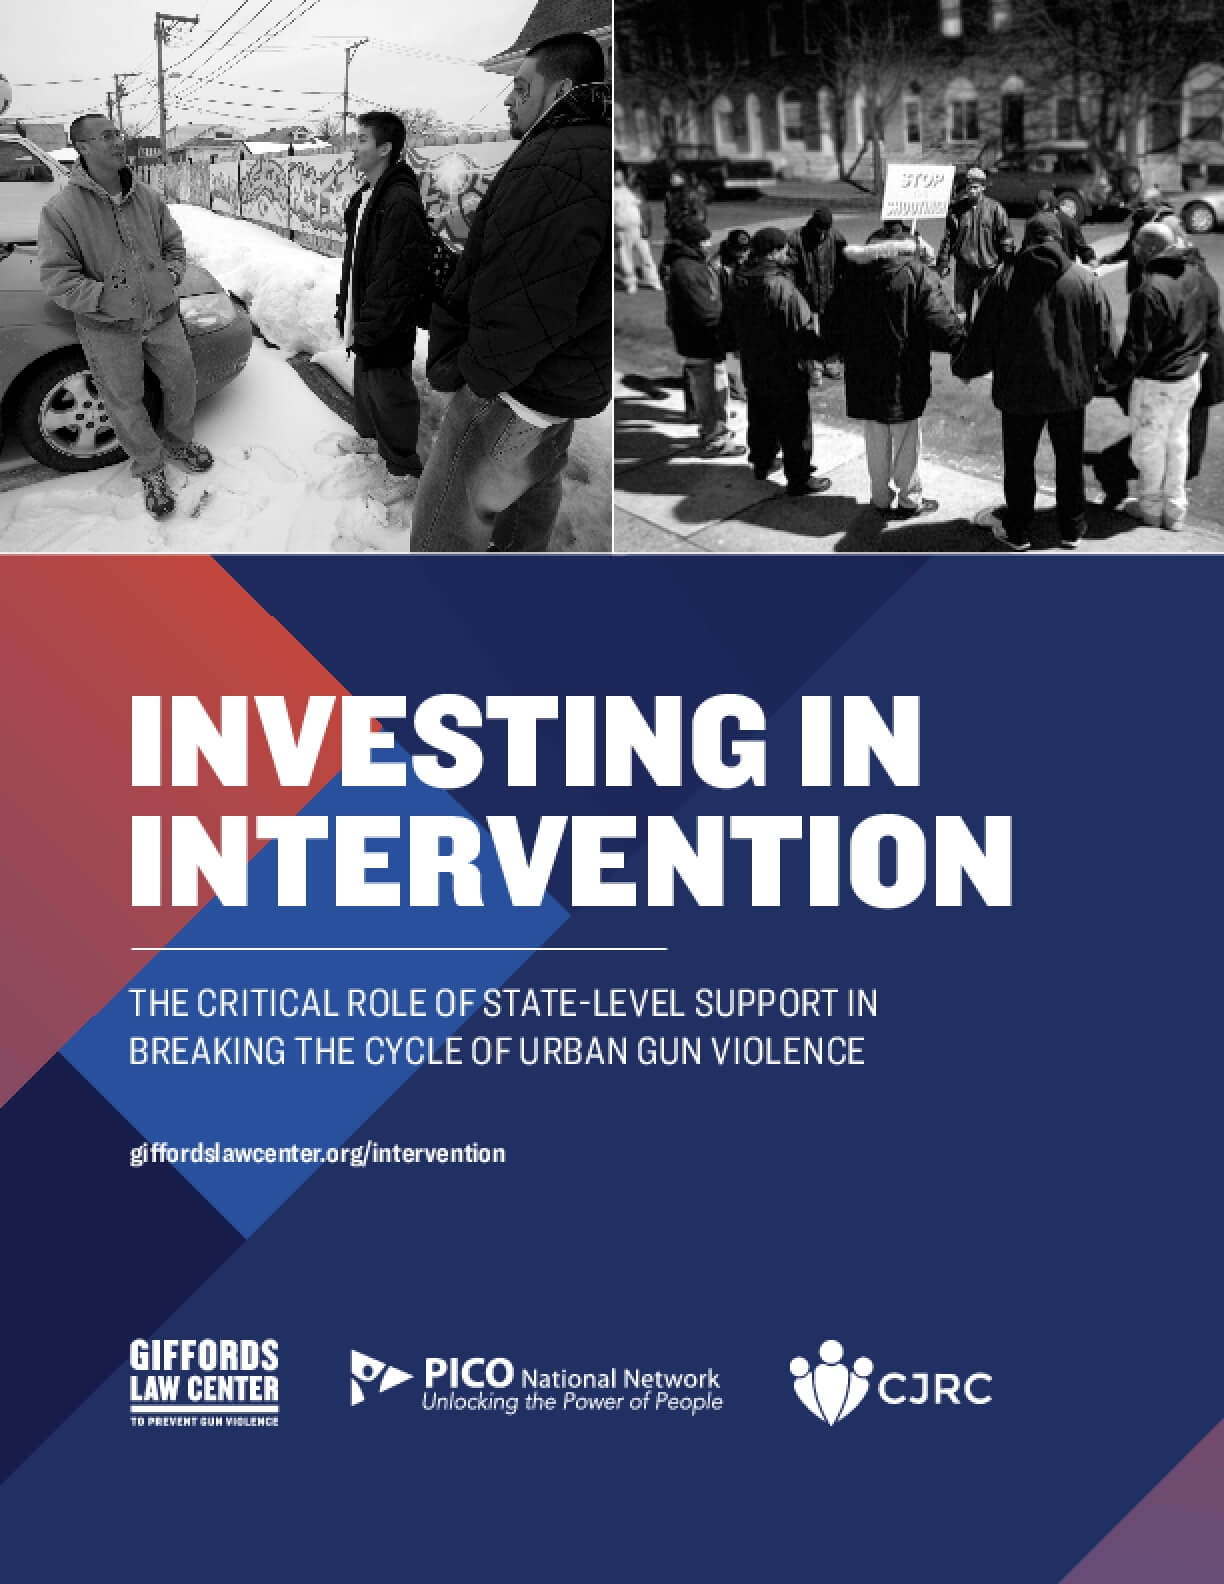 Investing in Intervention: The Critical Role of State-level Support in Breaking the Cycle of Urban Gun Violence